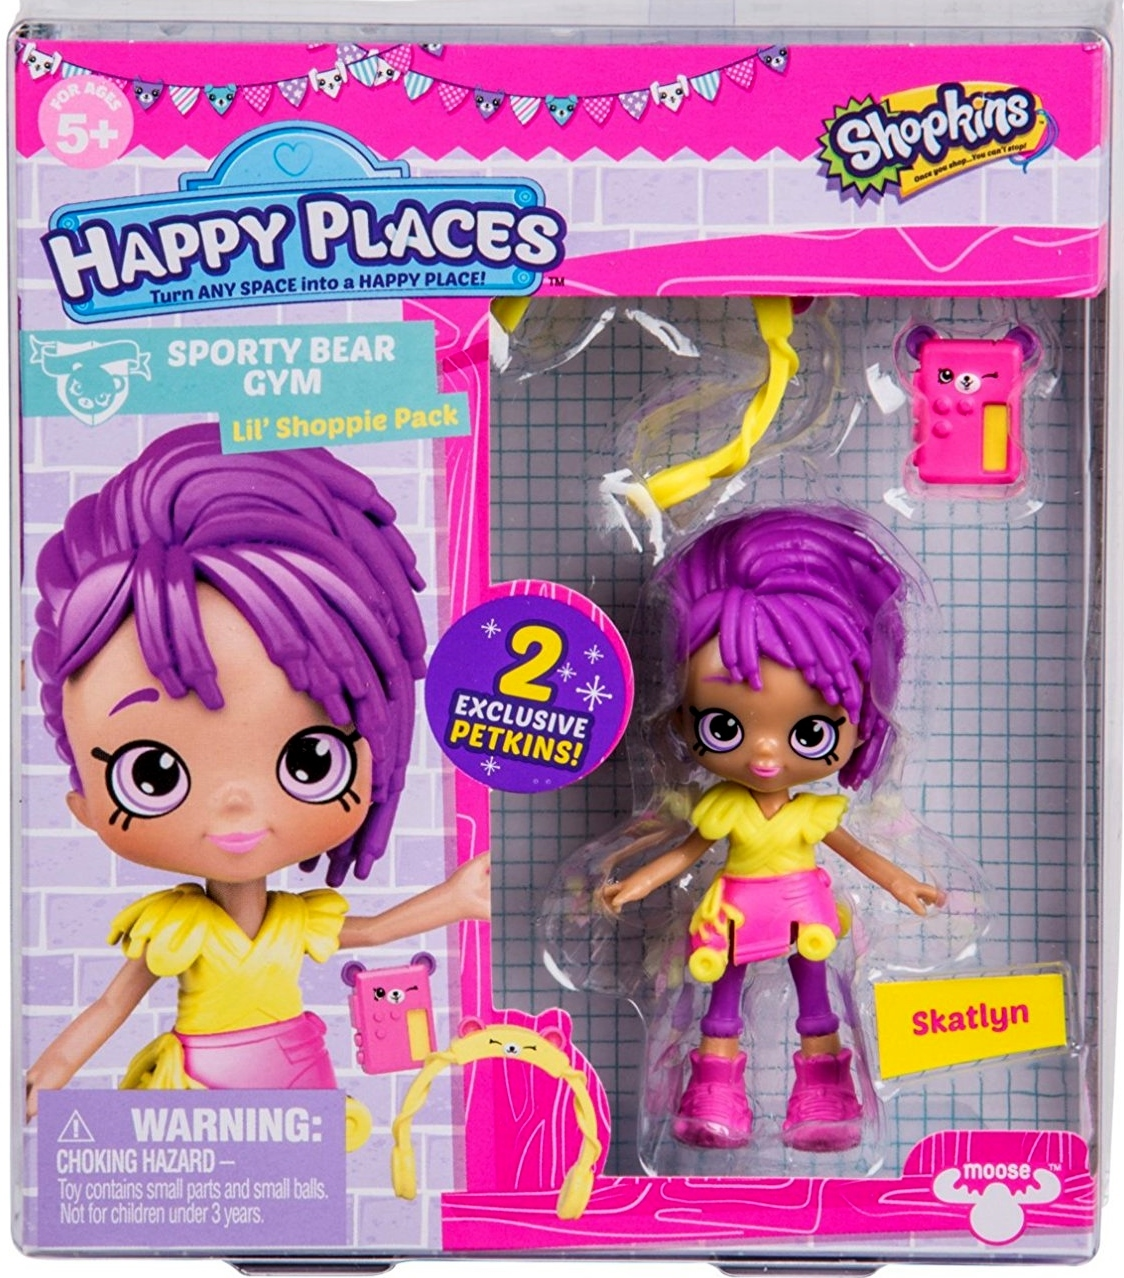 Shopkins Happy Places Skatlyn & 2 exclusive Petkins Lil' Shoppie Pack S3